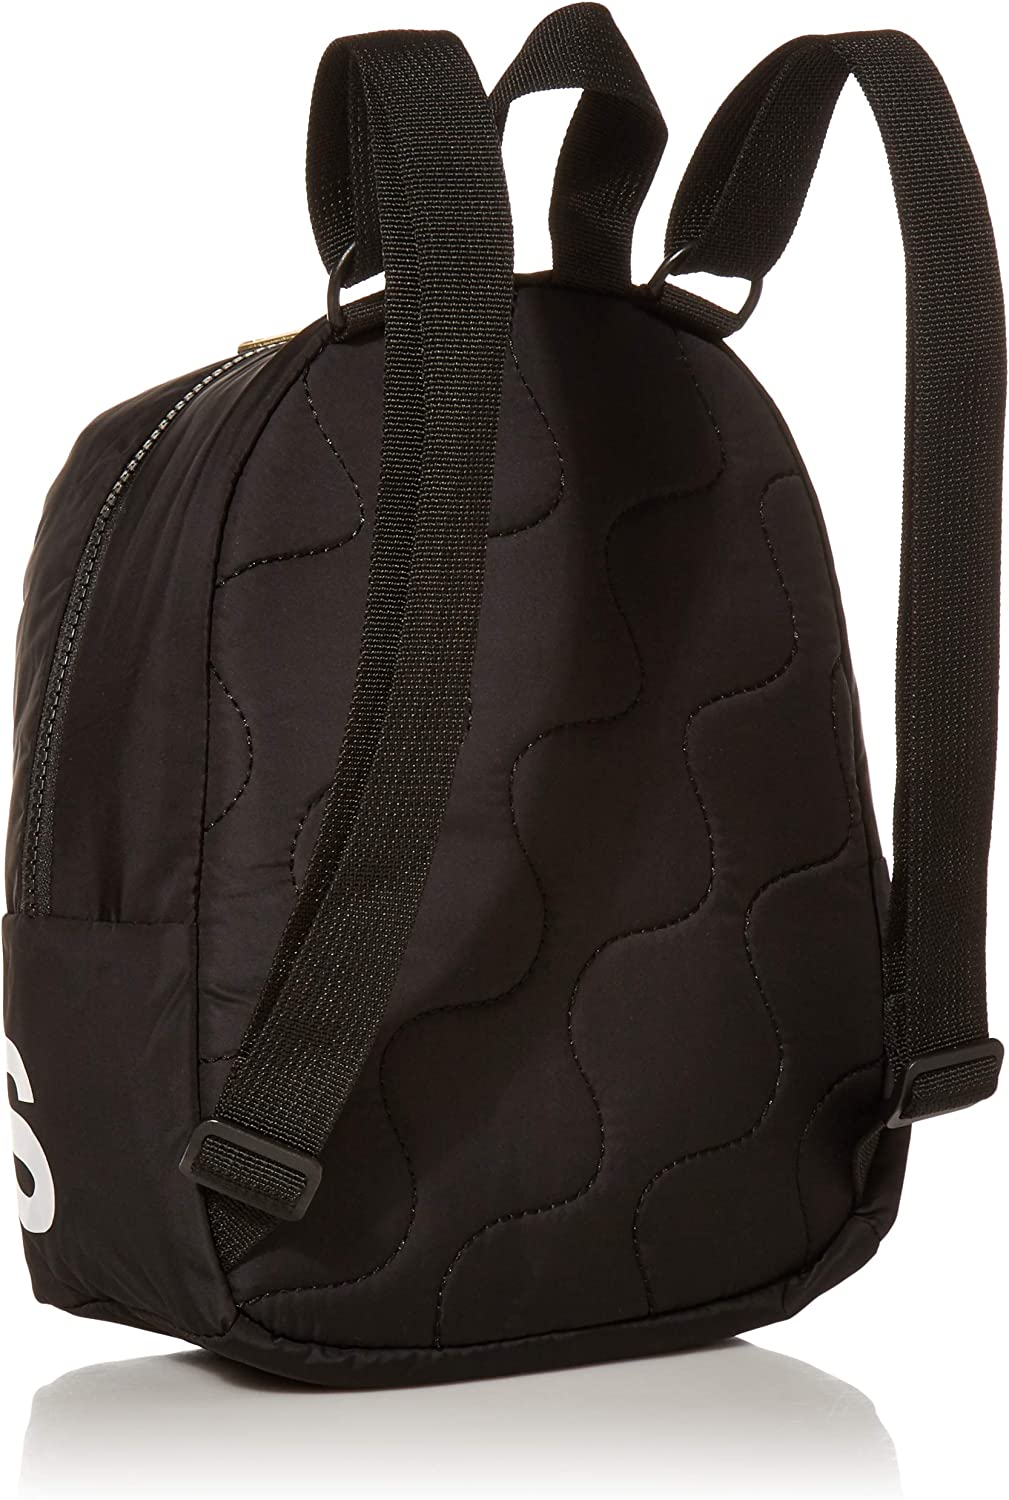 adidas Linear Mini Backpack, Black/White/Gold, ONE SIZE: Clothing